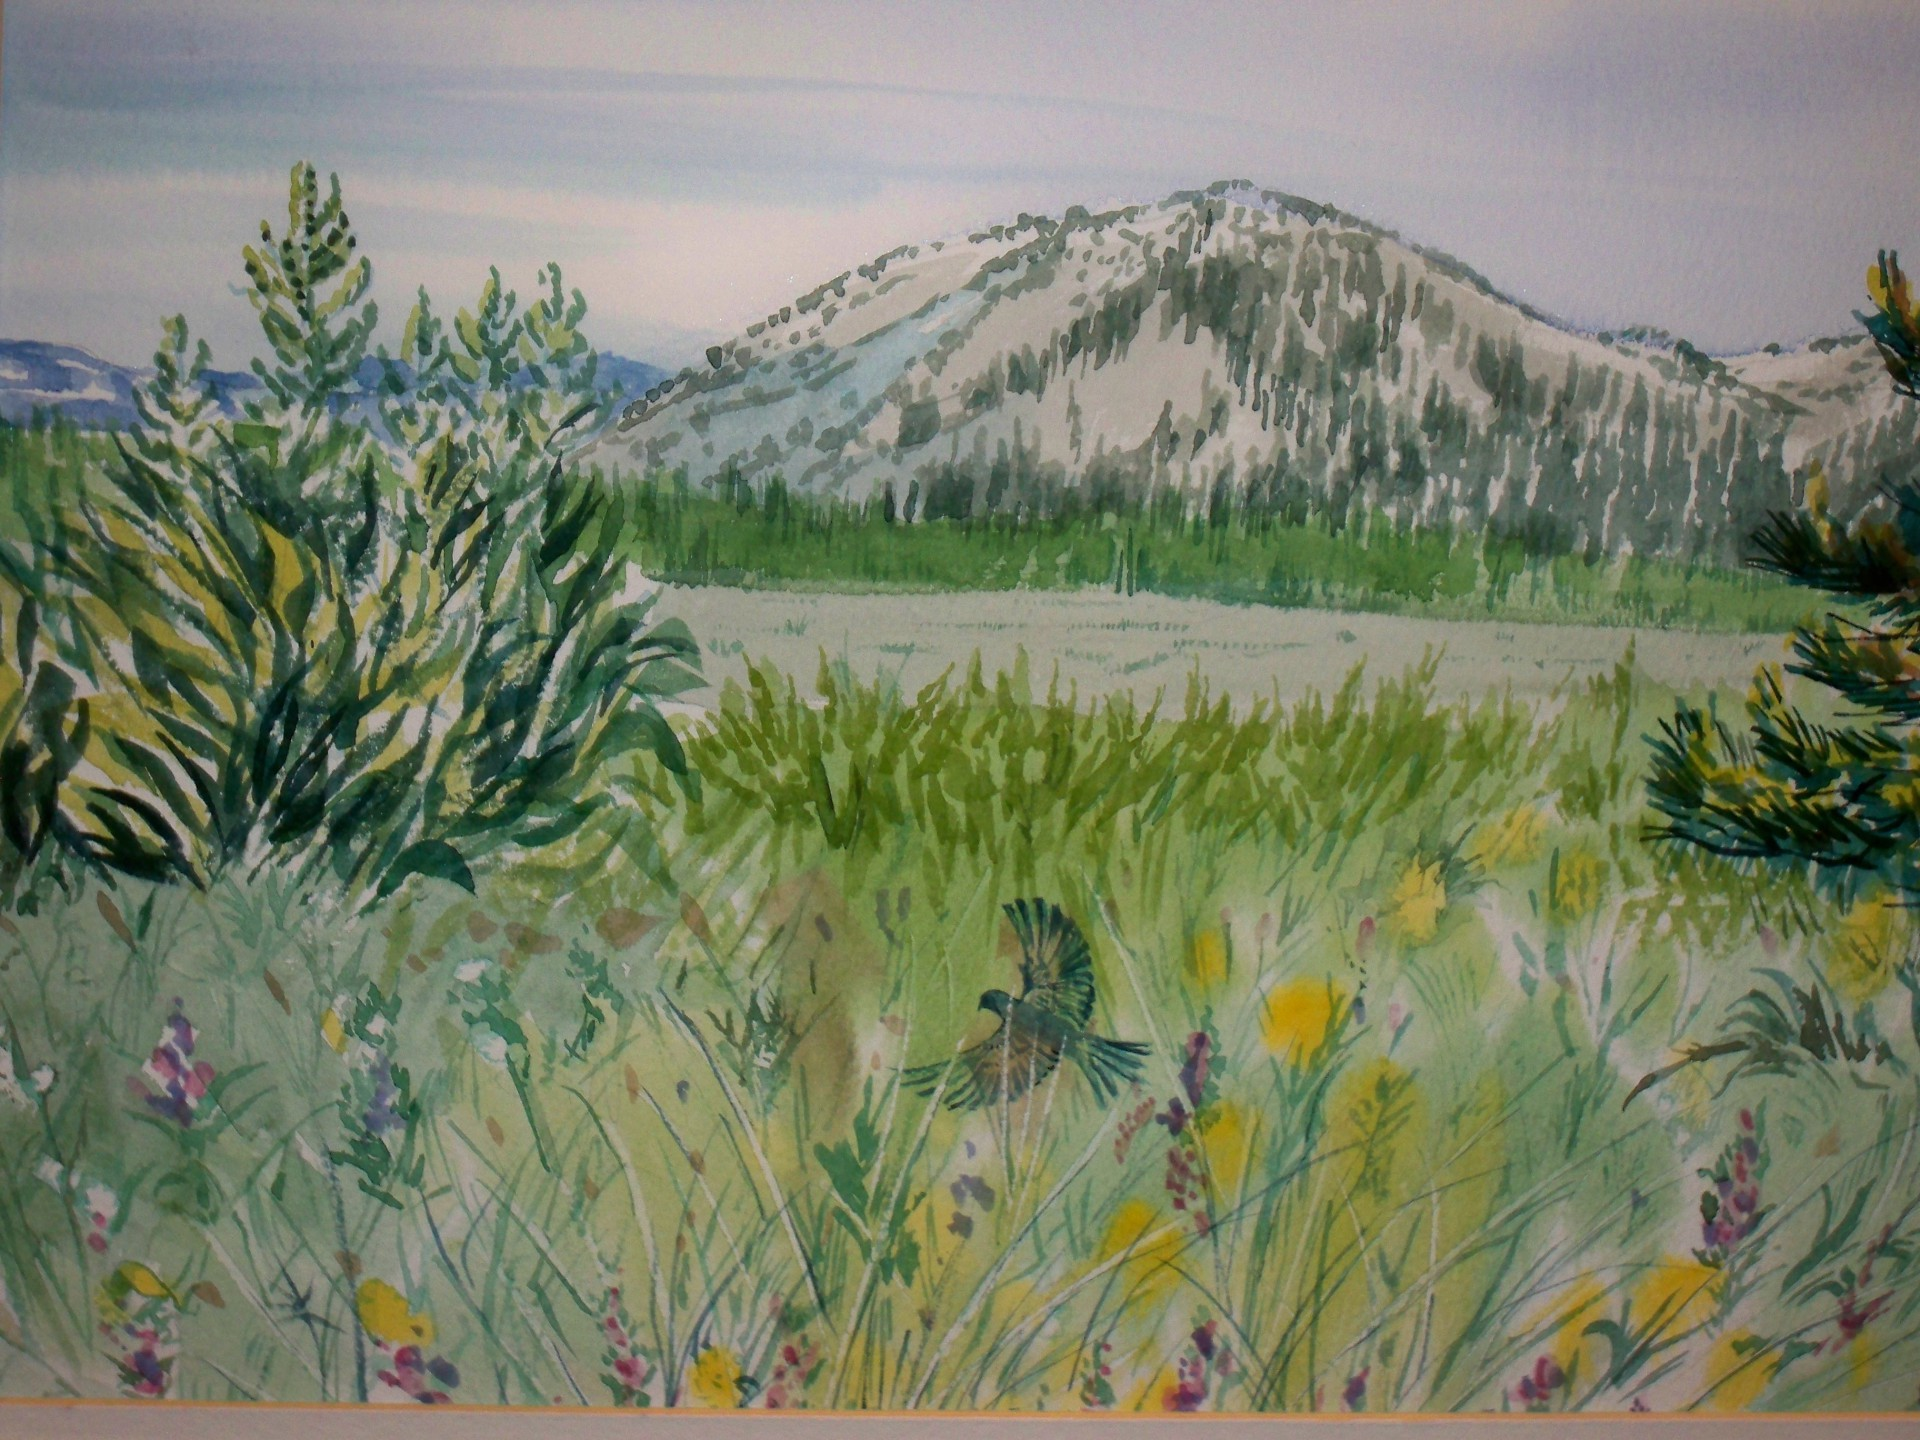 MOUNT ROSE MEADOWS